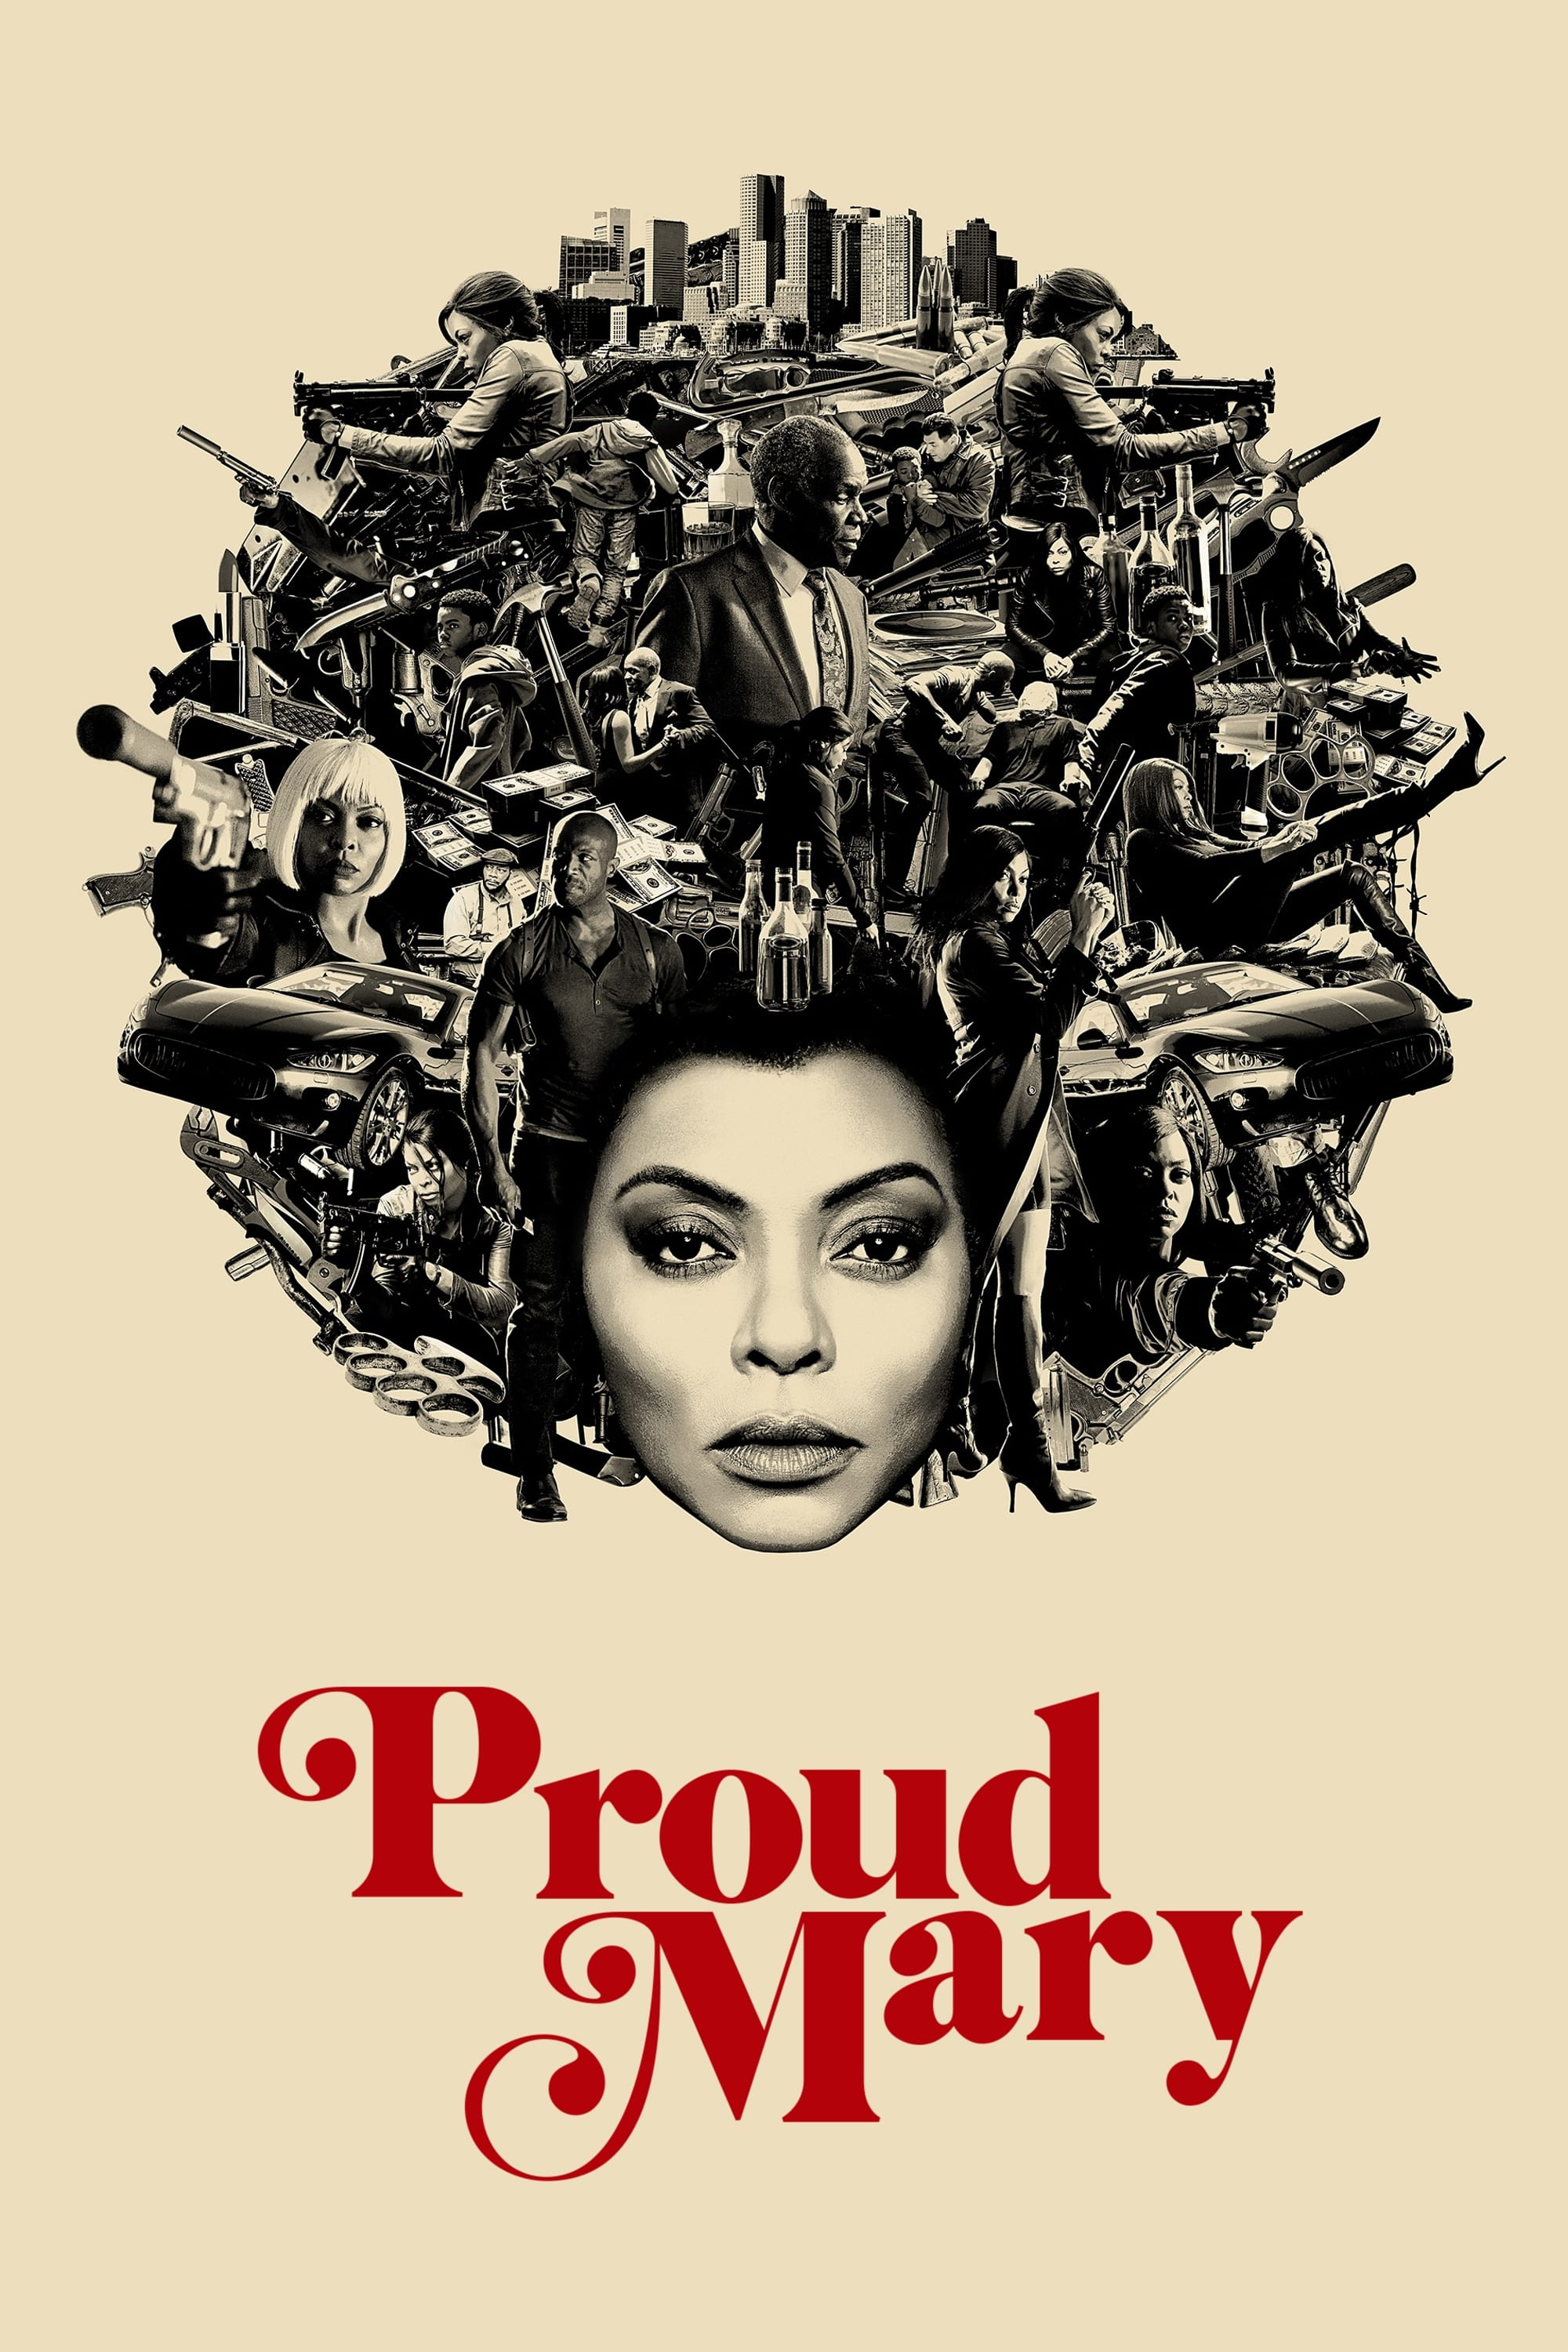 image for Proud Mary